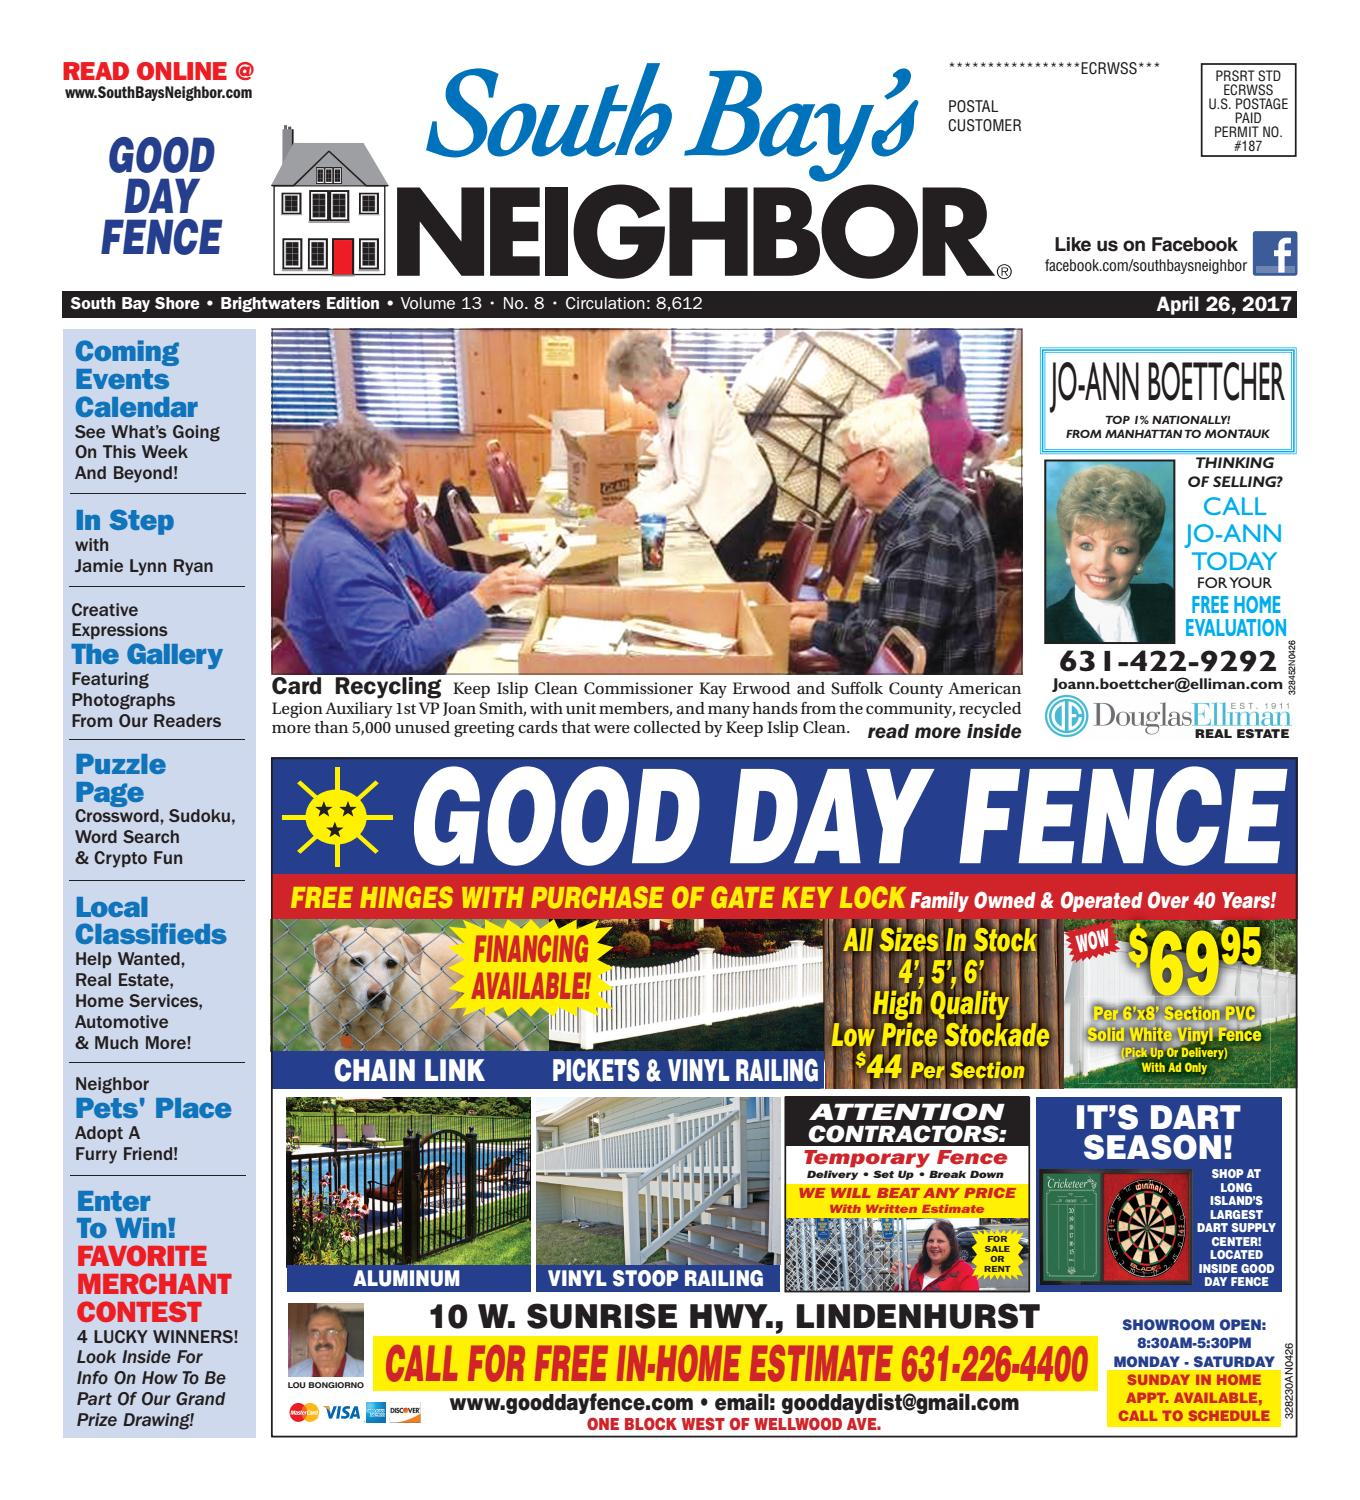 April 26 2017 South Bay Shore By South Bays Neighbor Newspapers